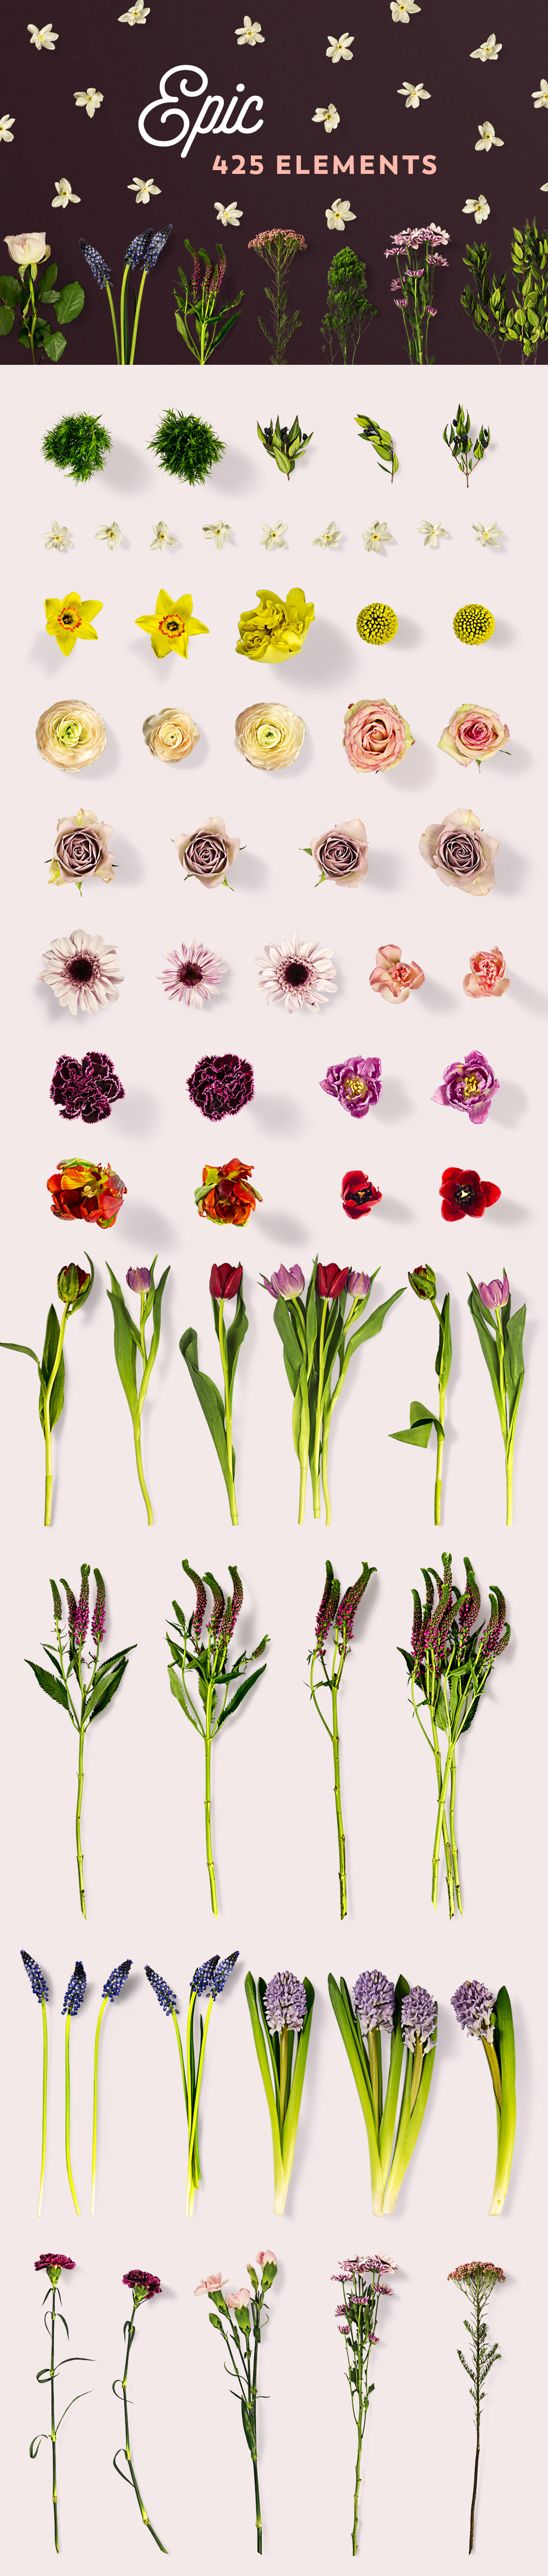 Flower Mockups Market Vol. 1